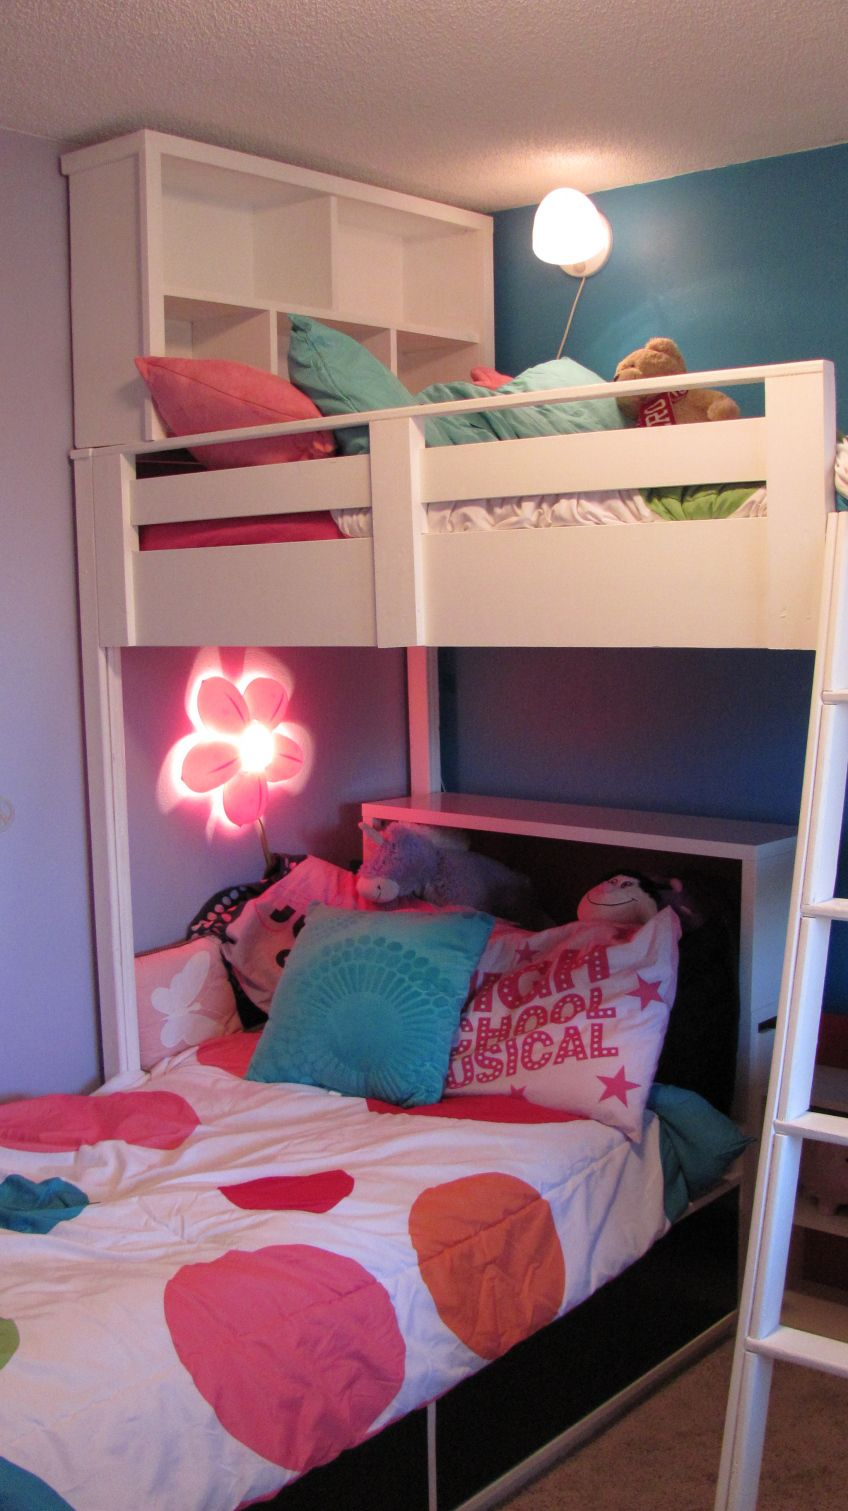 Pin By Karen Martin On River House Bedroom Bed Bunk Beds